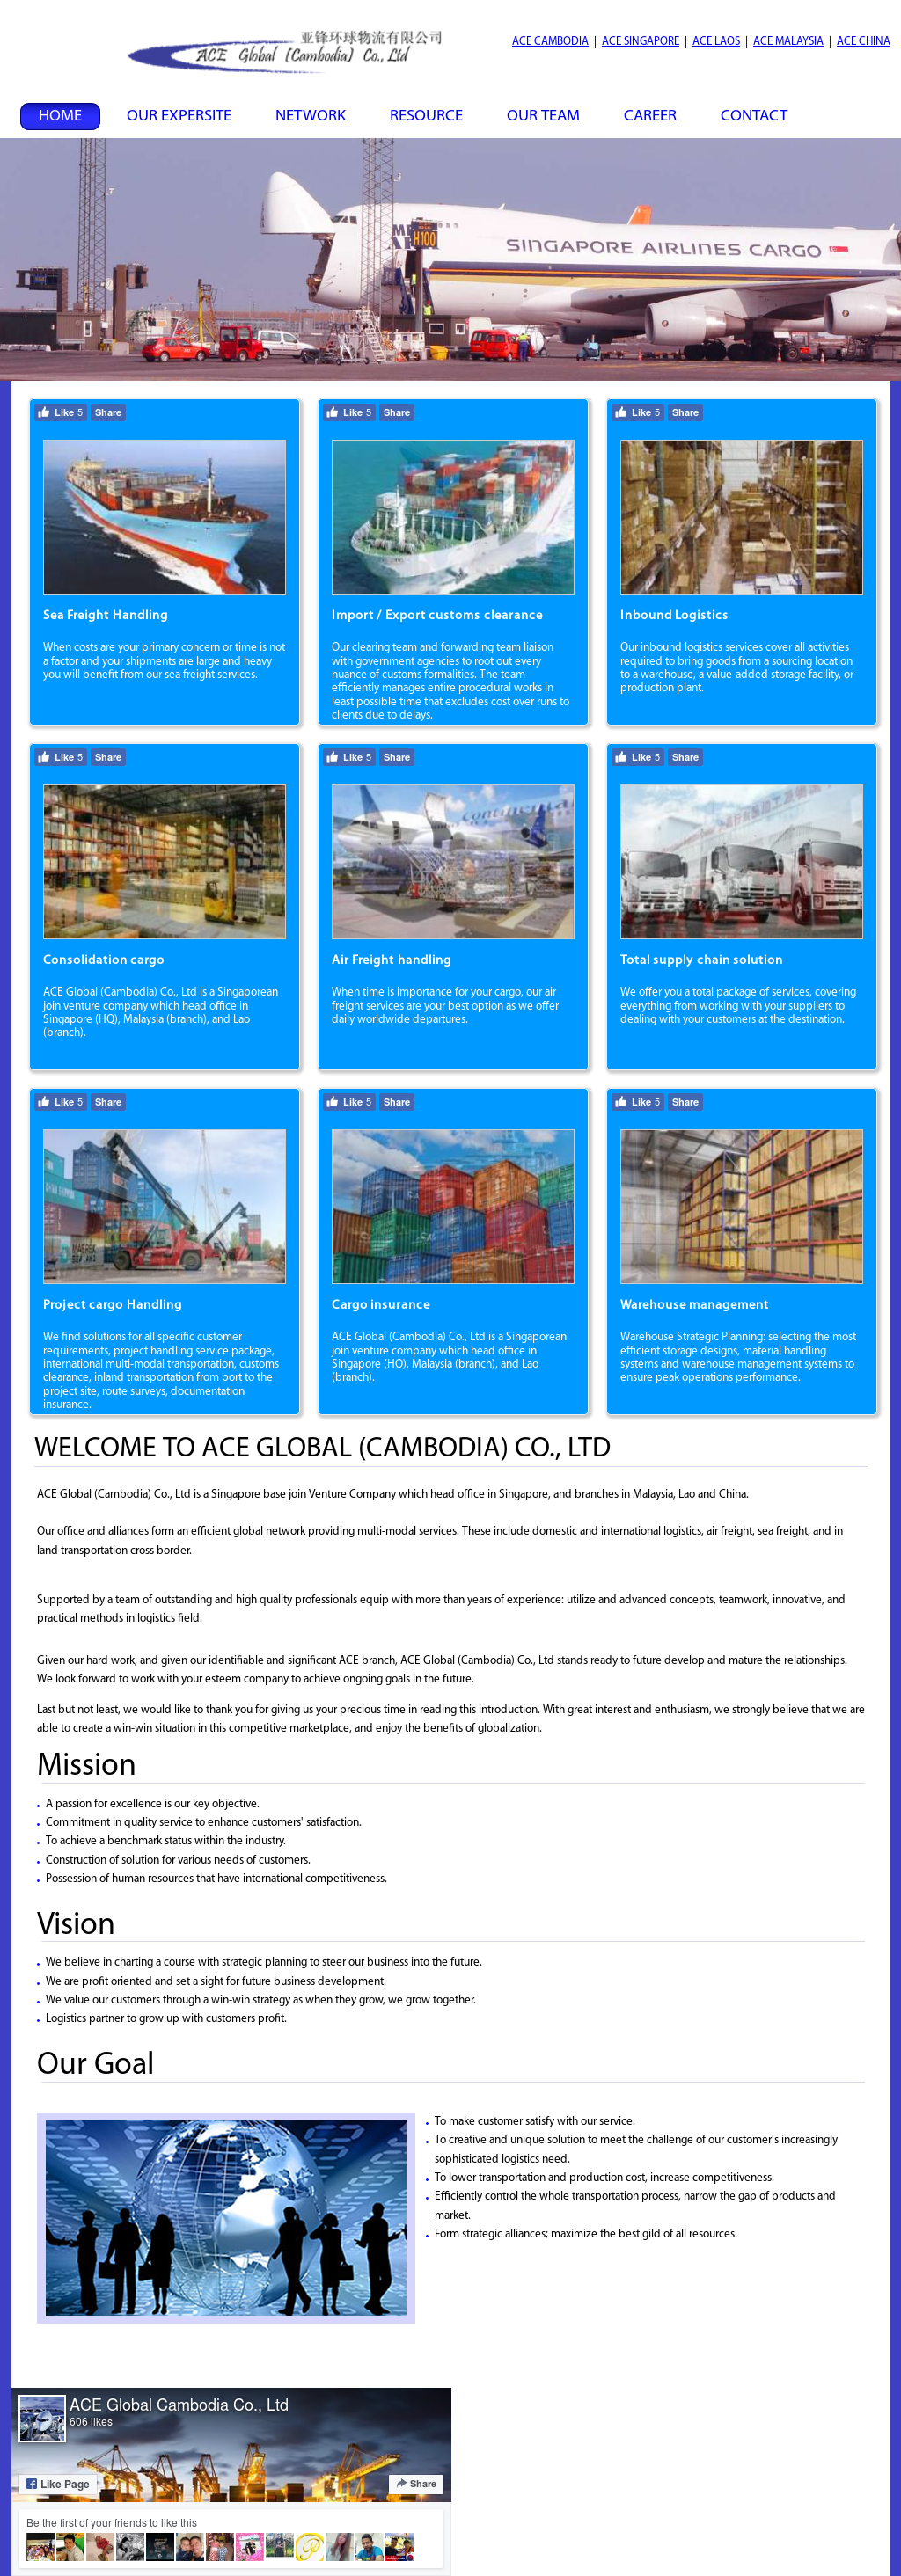 Ace Global Cambodia Competitors, Revenue and Employees